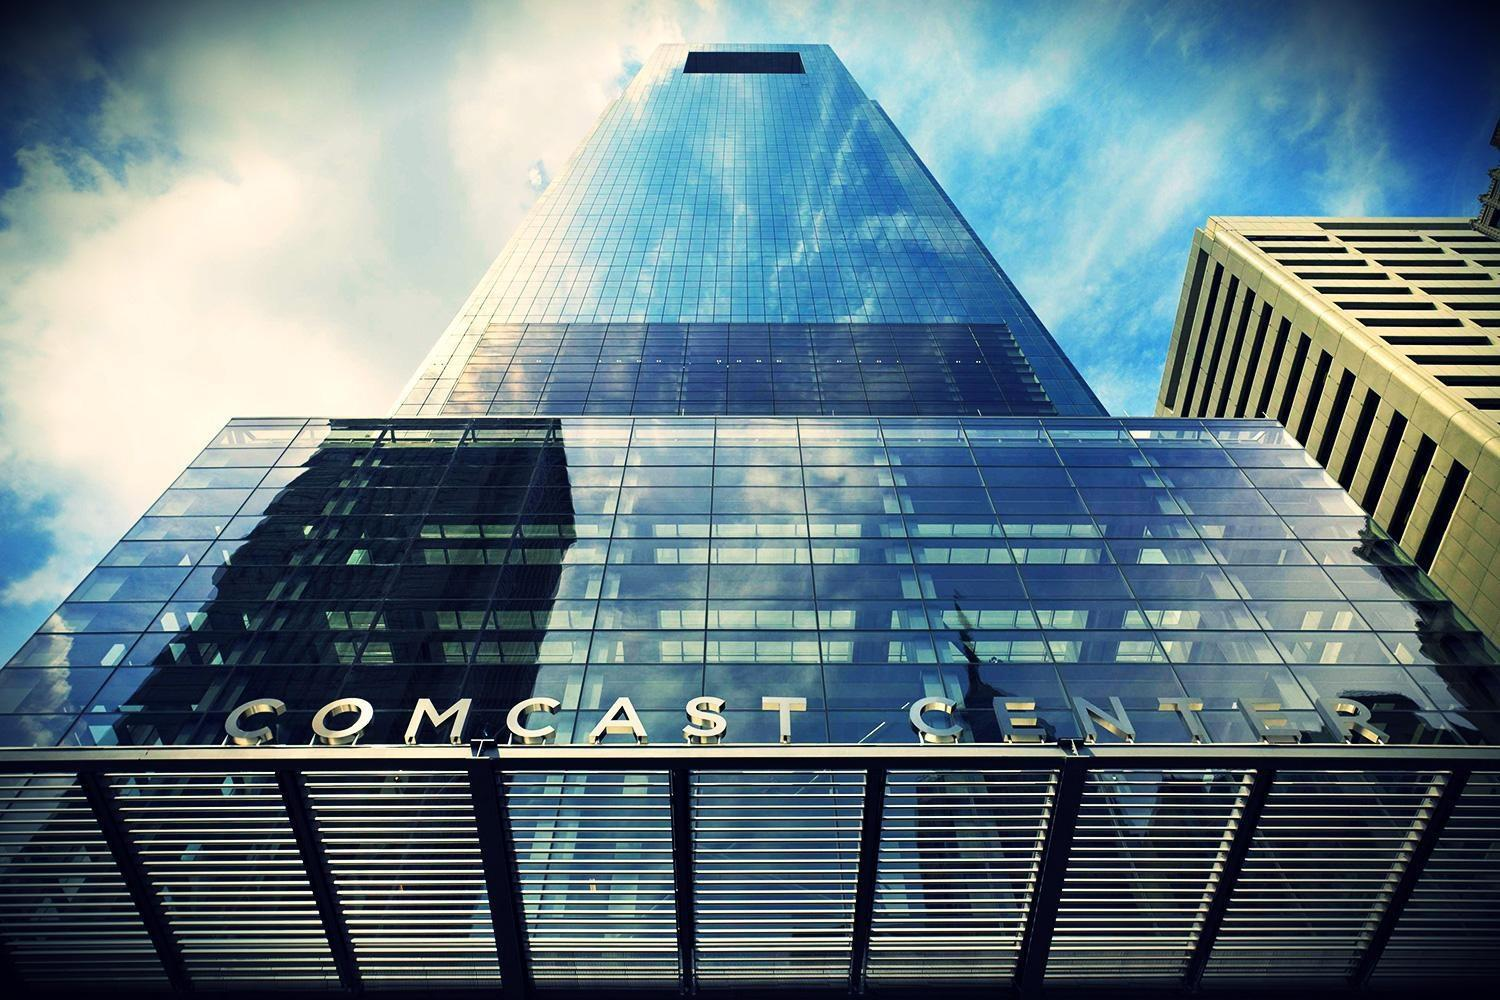 Comcast and Time Warner continue to grow despite consumer complaints